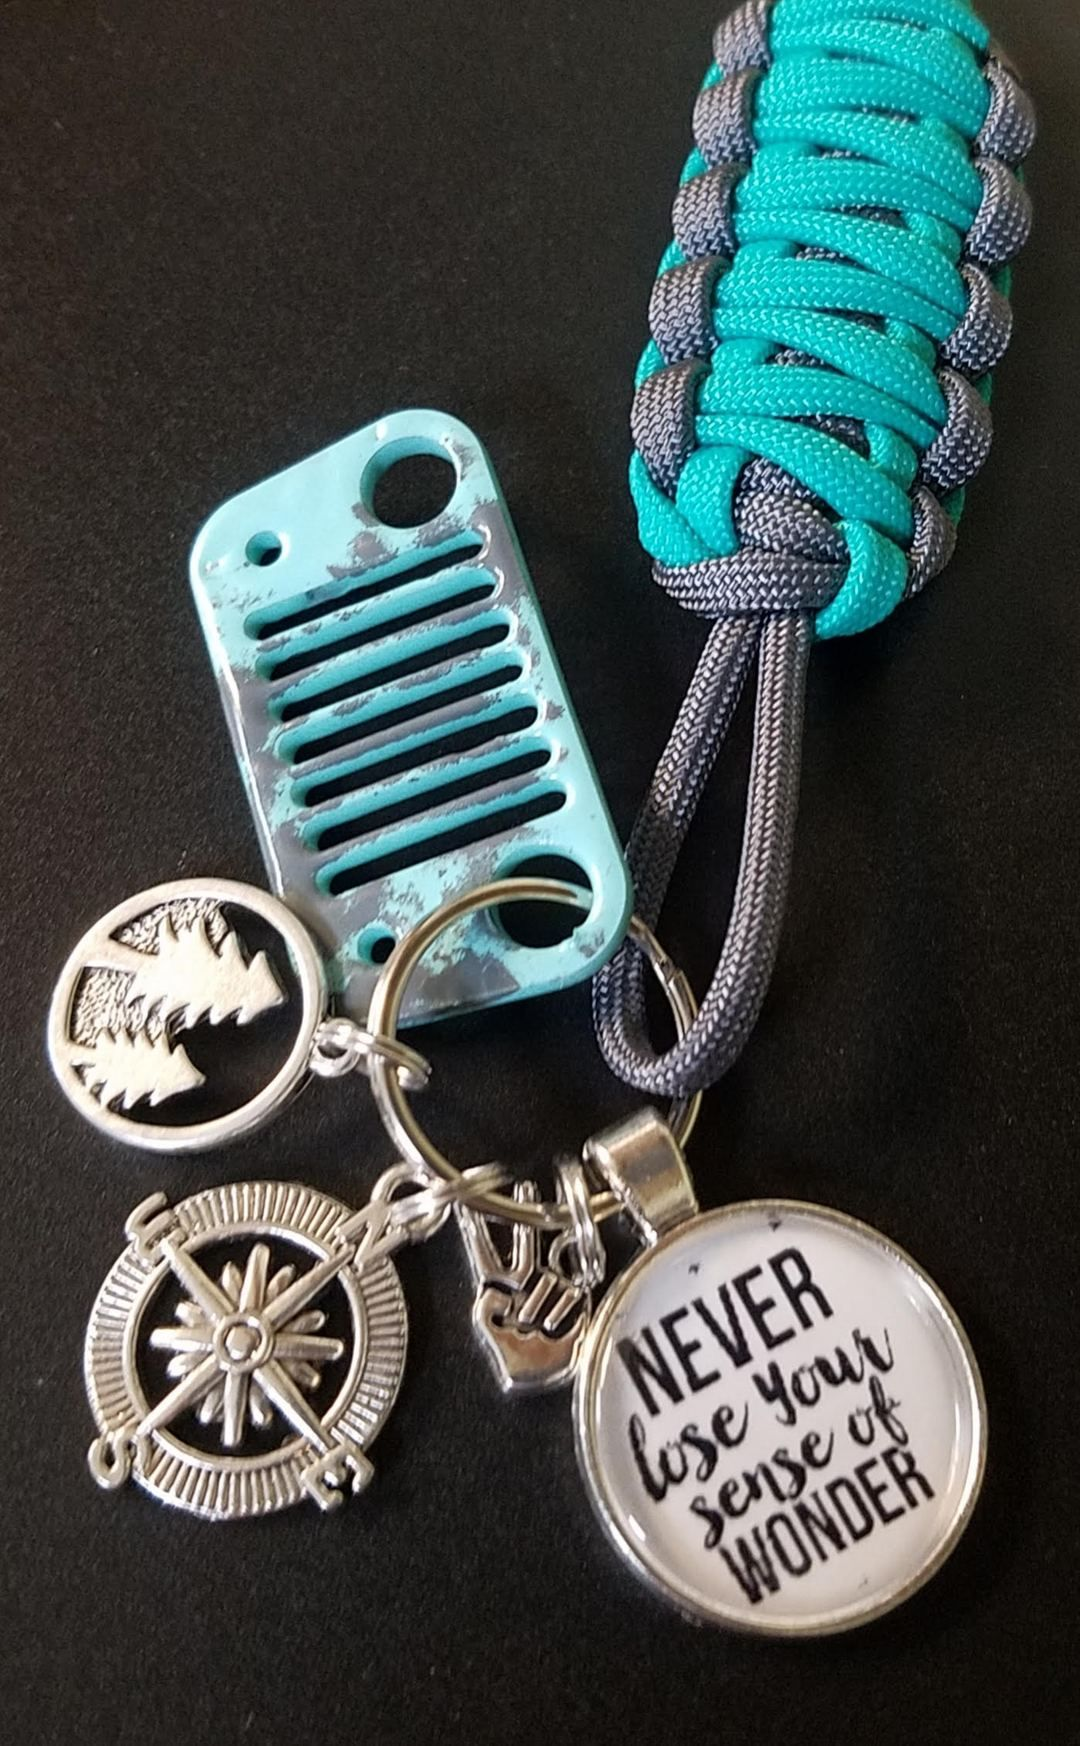 Never Lose Your Sense Of Wonder Jeep Grill Key Fob In 2020 With Images Jeep Grill Jeep Keychain Jeep Keys